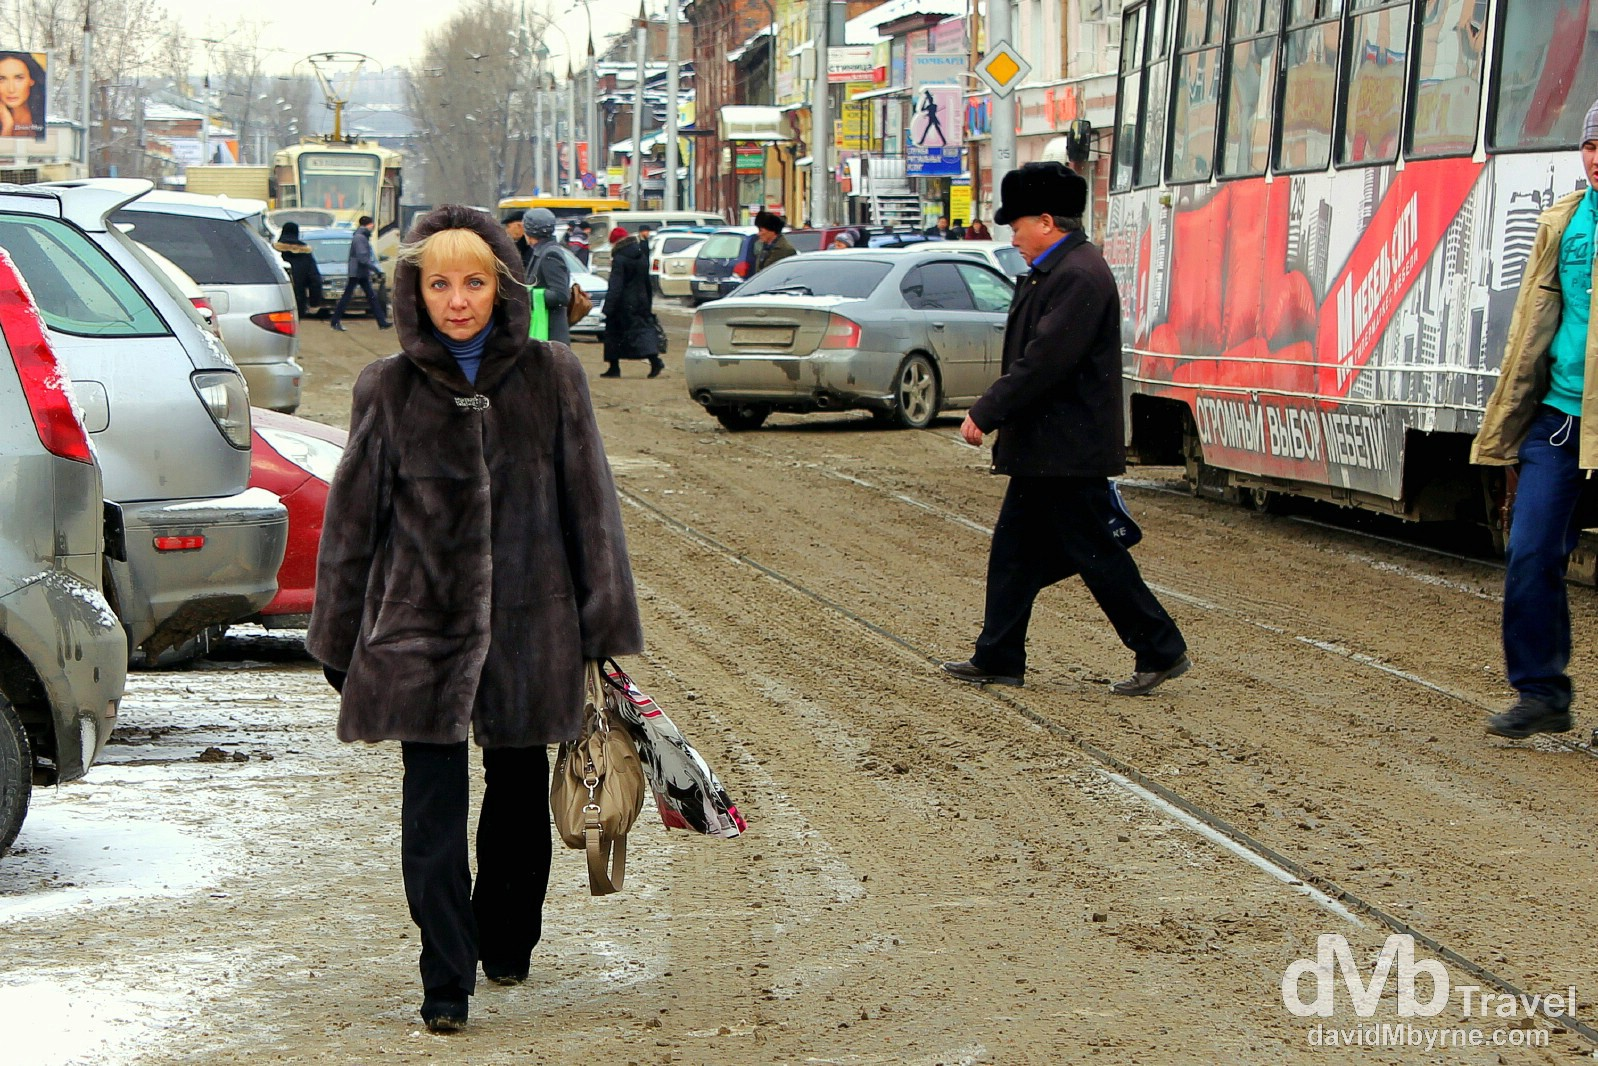 Walking in the slush near Central Market in Irkutsk, Siberian Russia. November 8th 2012.